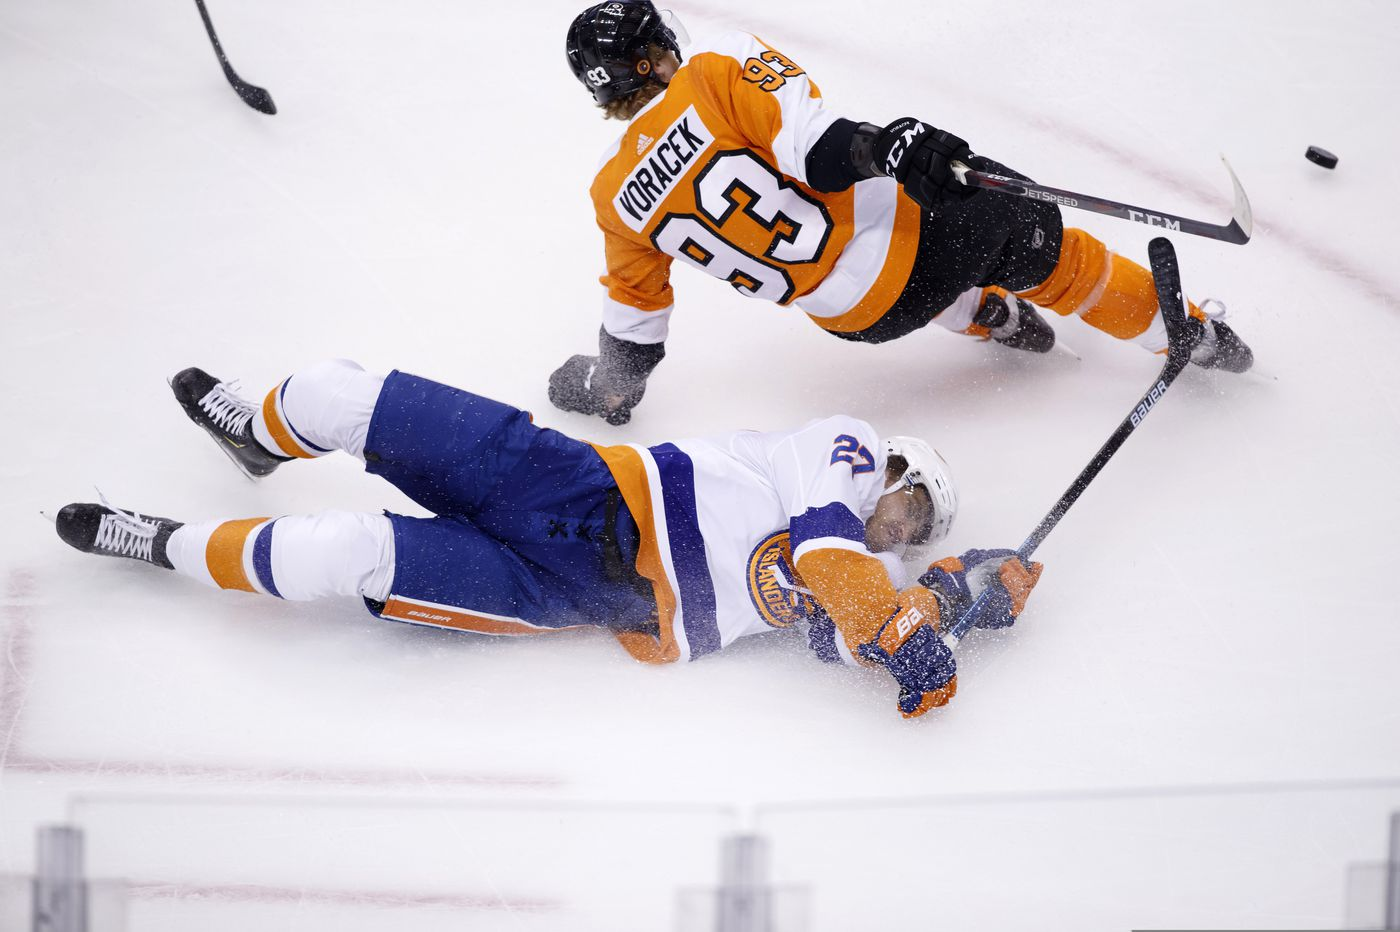 Flyers again show resiliency, improve to 11-0 in games following a loss since January